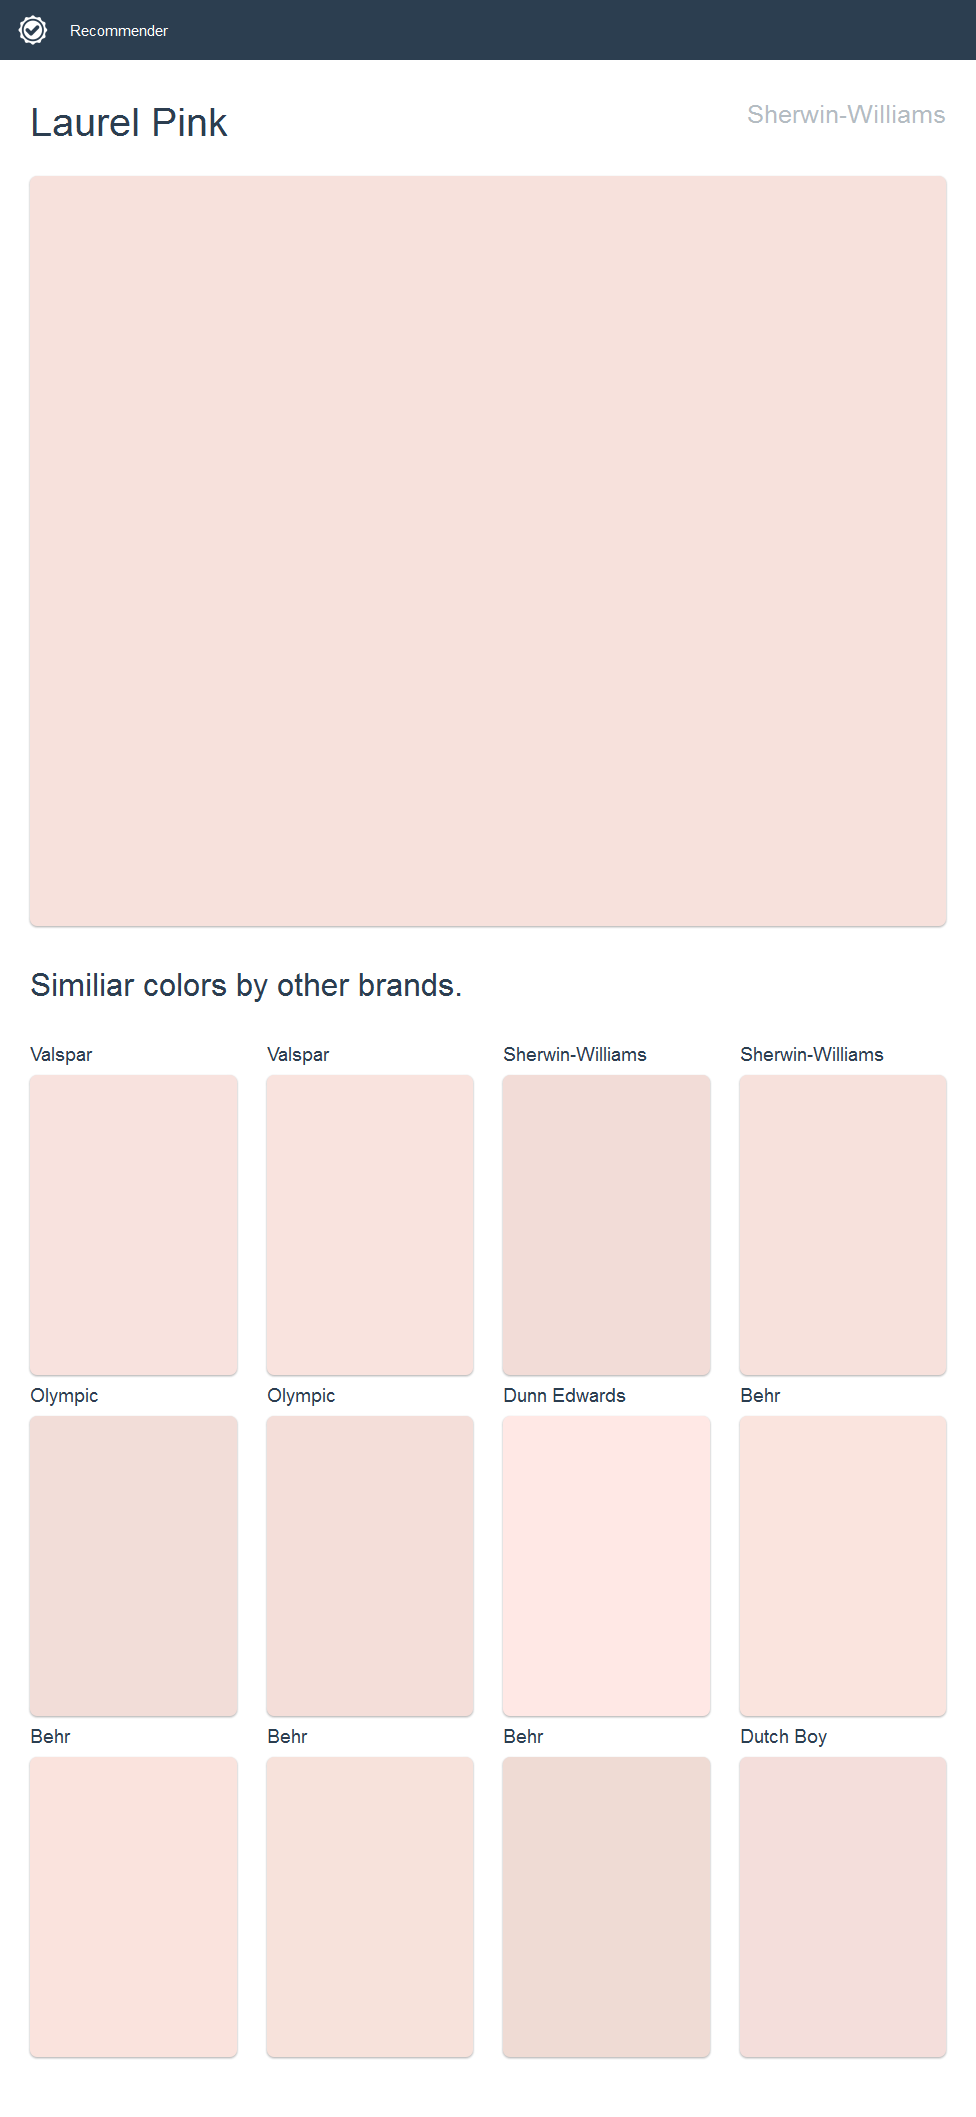 Laurel Pink, Sherwin Williams